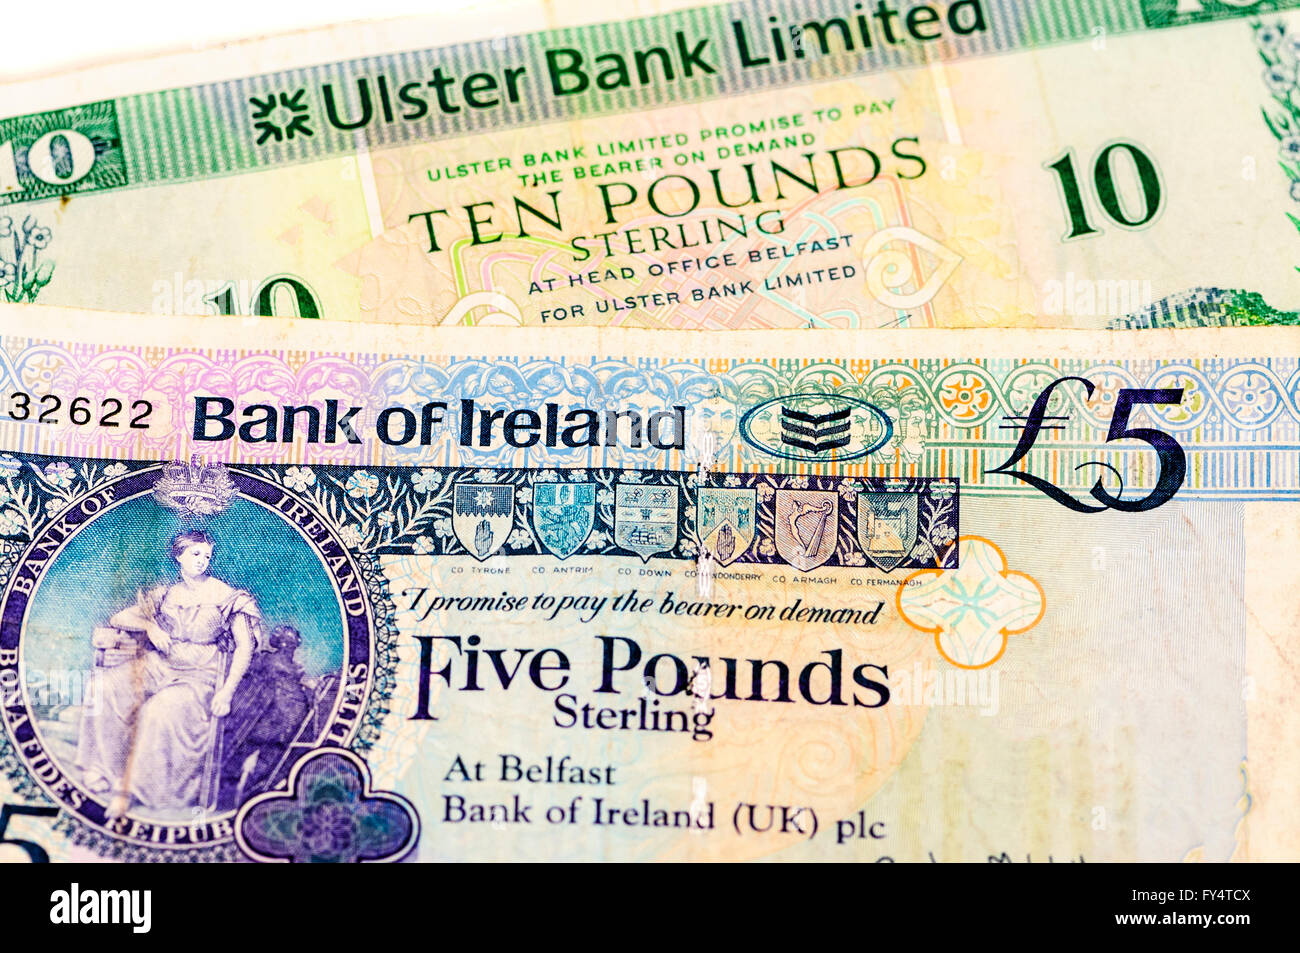 Ulster Bank and Bank of Ireland bank notes, as used in Northern Ireland. - Stock Image